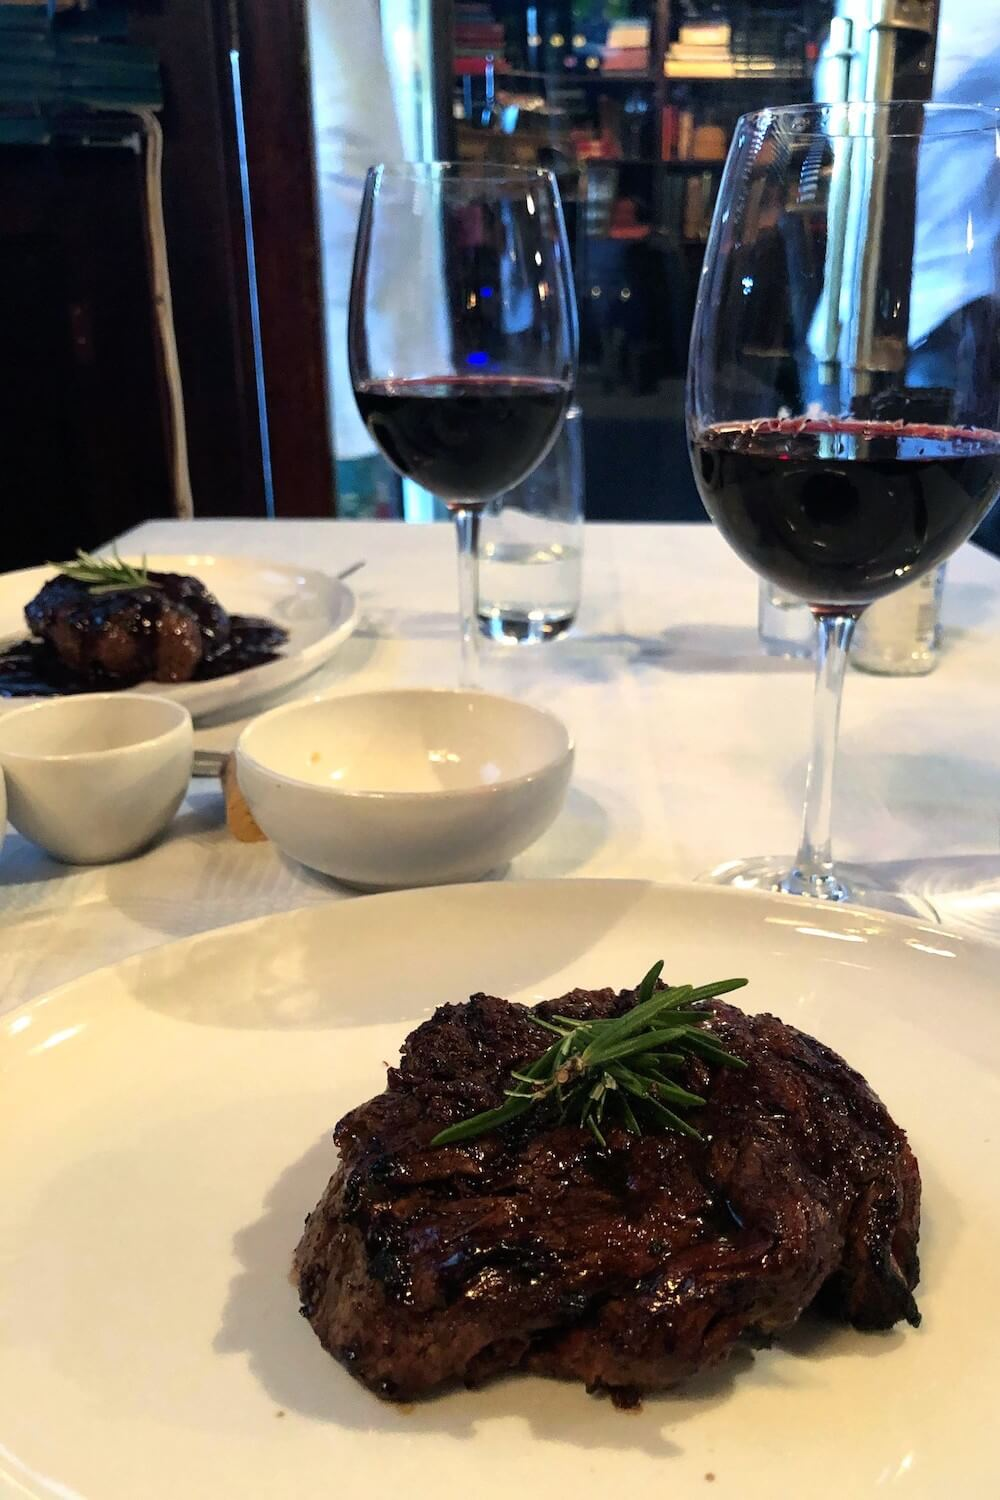 Steak and wine at Hussar Grill, a classic Cape Town restaurant known for great steaks.